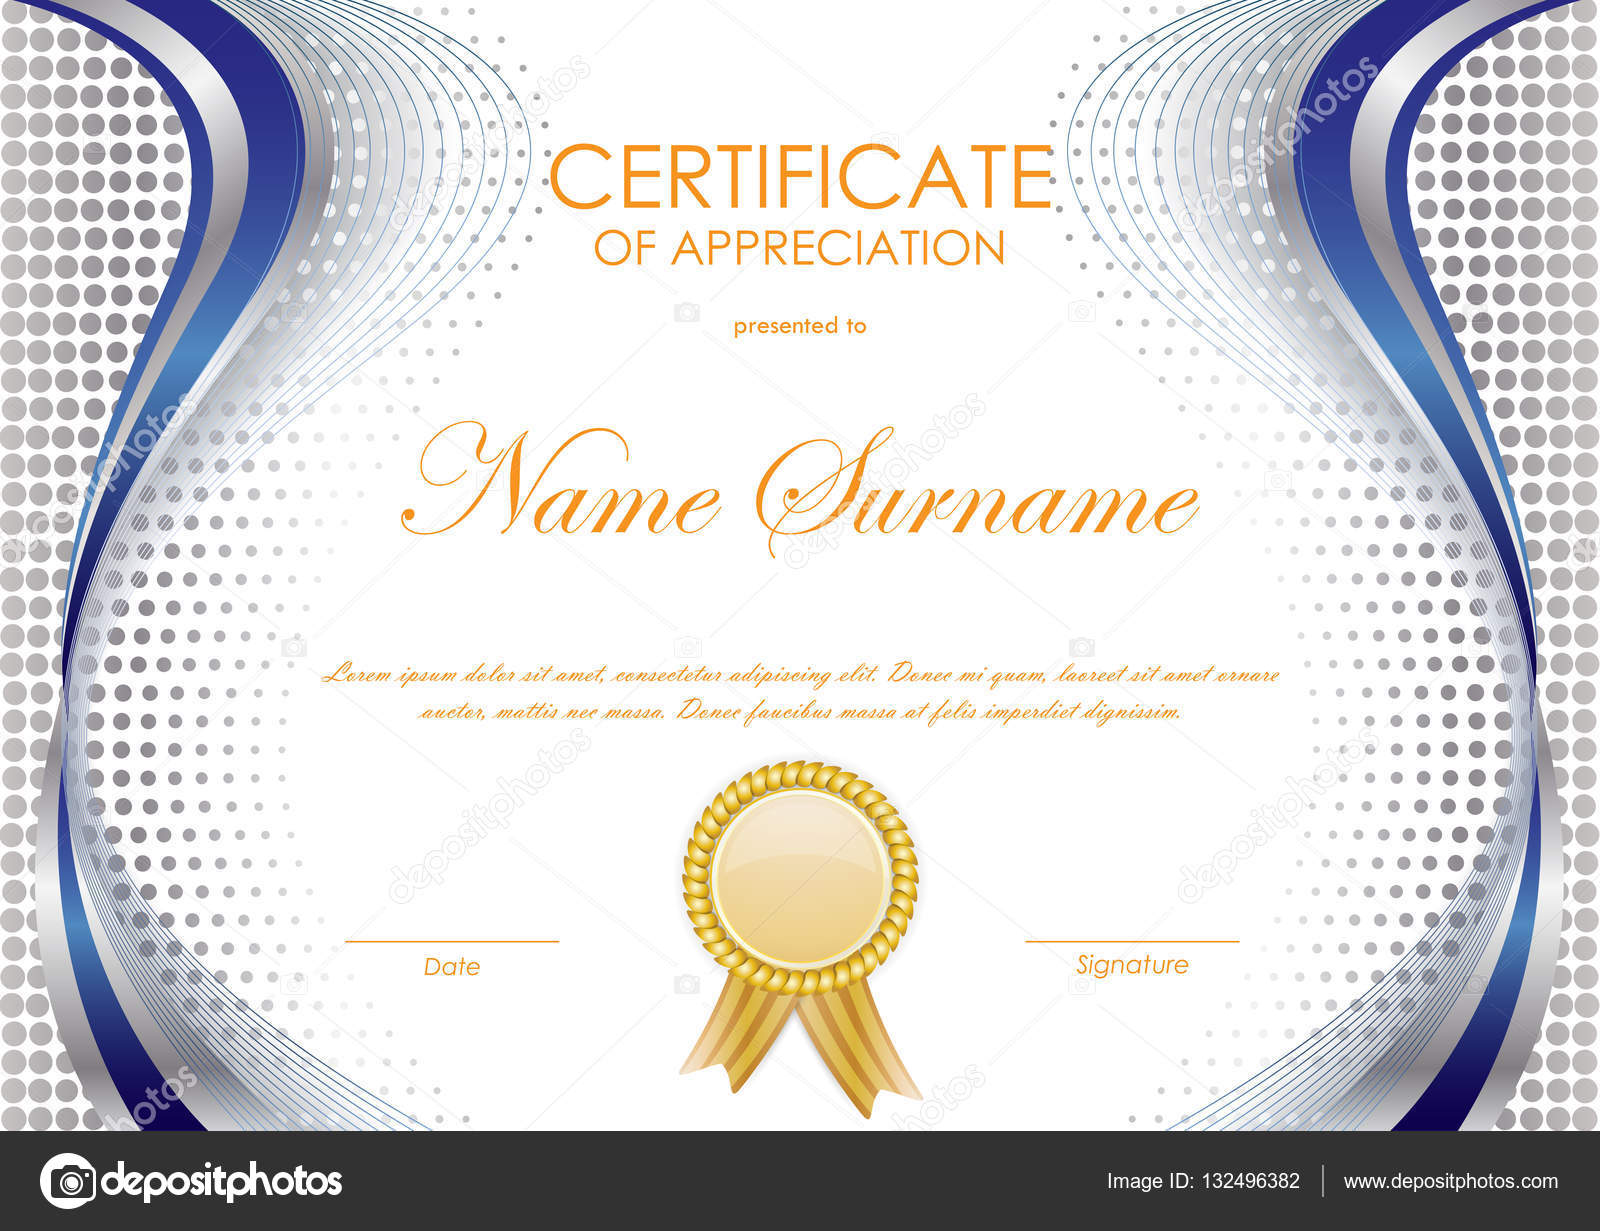 Certificate of appreciation template stock vector denchik 132496382 certificate of appreciation template with blue and silver wavy background and gold label vector illustration vector by denchik yelopaper Choice Image